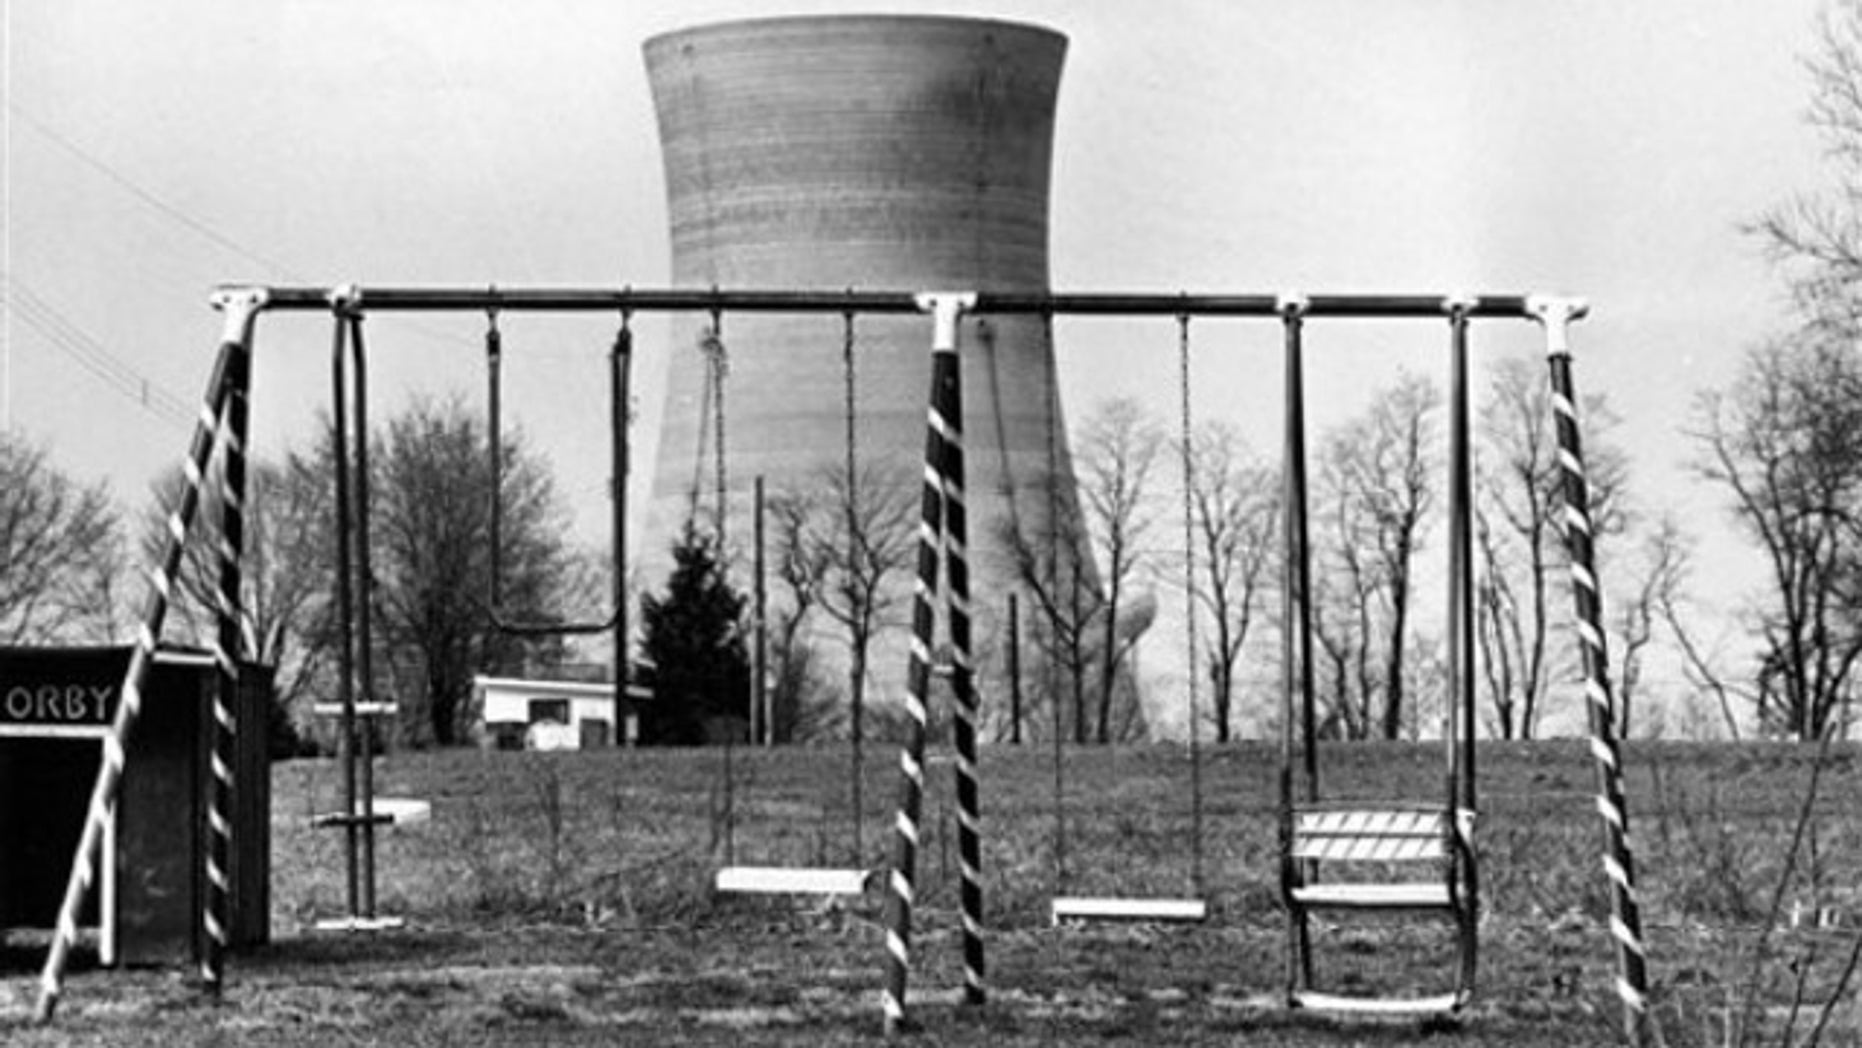 This file photo from March 30, 1979 shows a cooling tower of the Three Mile Island nuclear power plant near Harrisburg, Pa. , as it looms behind an abandoned playground. The partial meltdown at Three Mile Island nuclear plant in 1979 routed more than 180,000 people living within 50 miles of the plant, a five-day evacuation nightmare that residents are reliving as the nuclear plant crisis unfolds in Japan (AP).